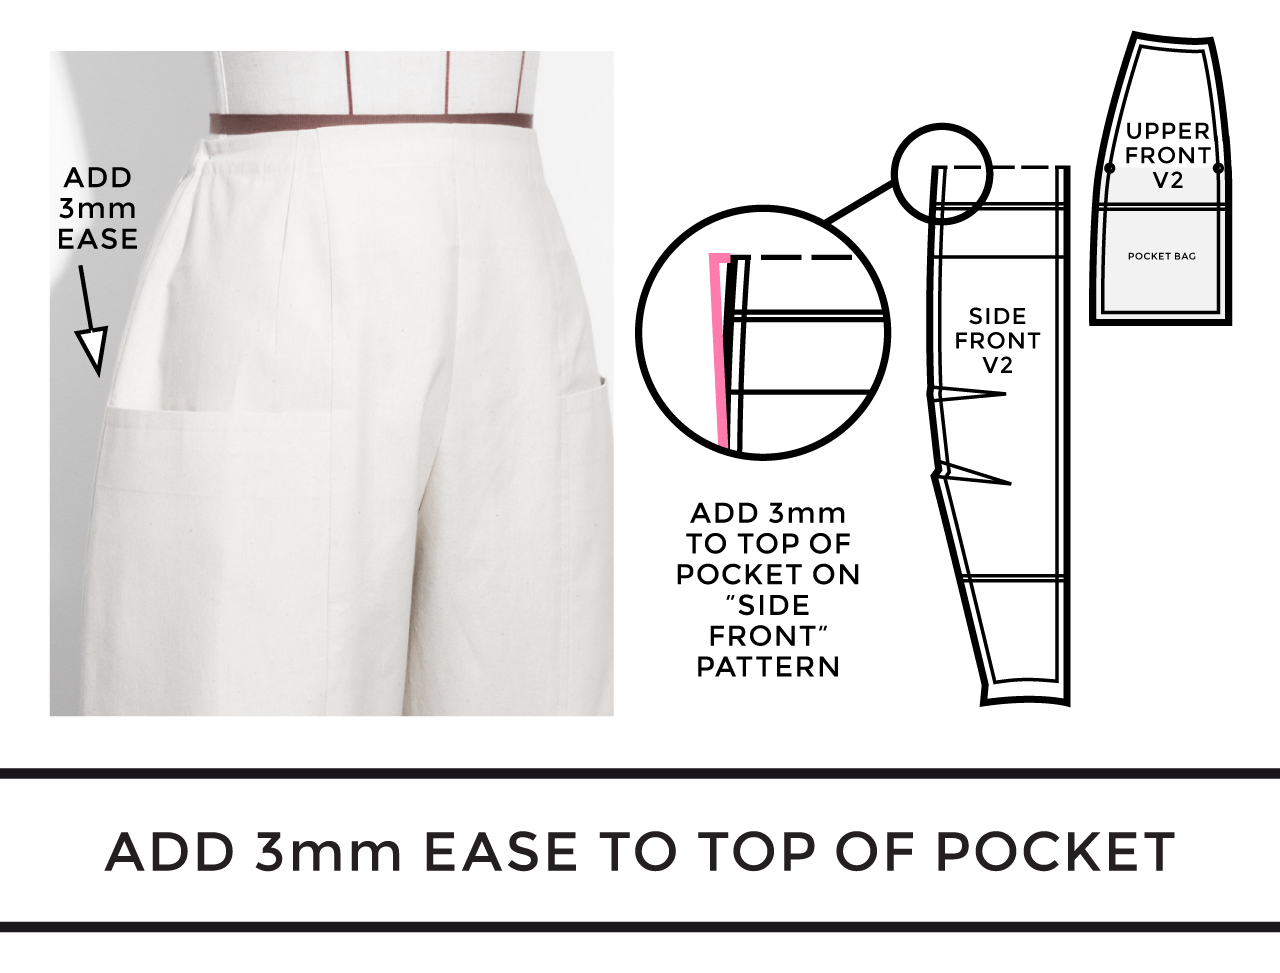 Assembil Blog: Toile No. 2: V8499 Trousers from Vogue Patterns. Adding ease to the top of the pocket, Image 1.